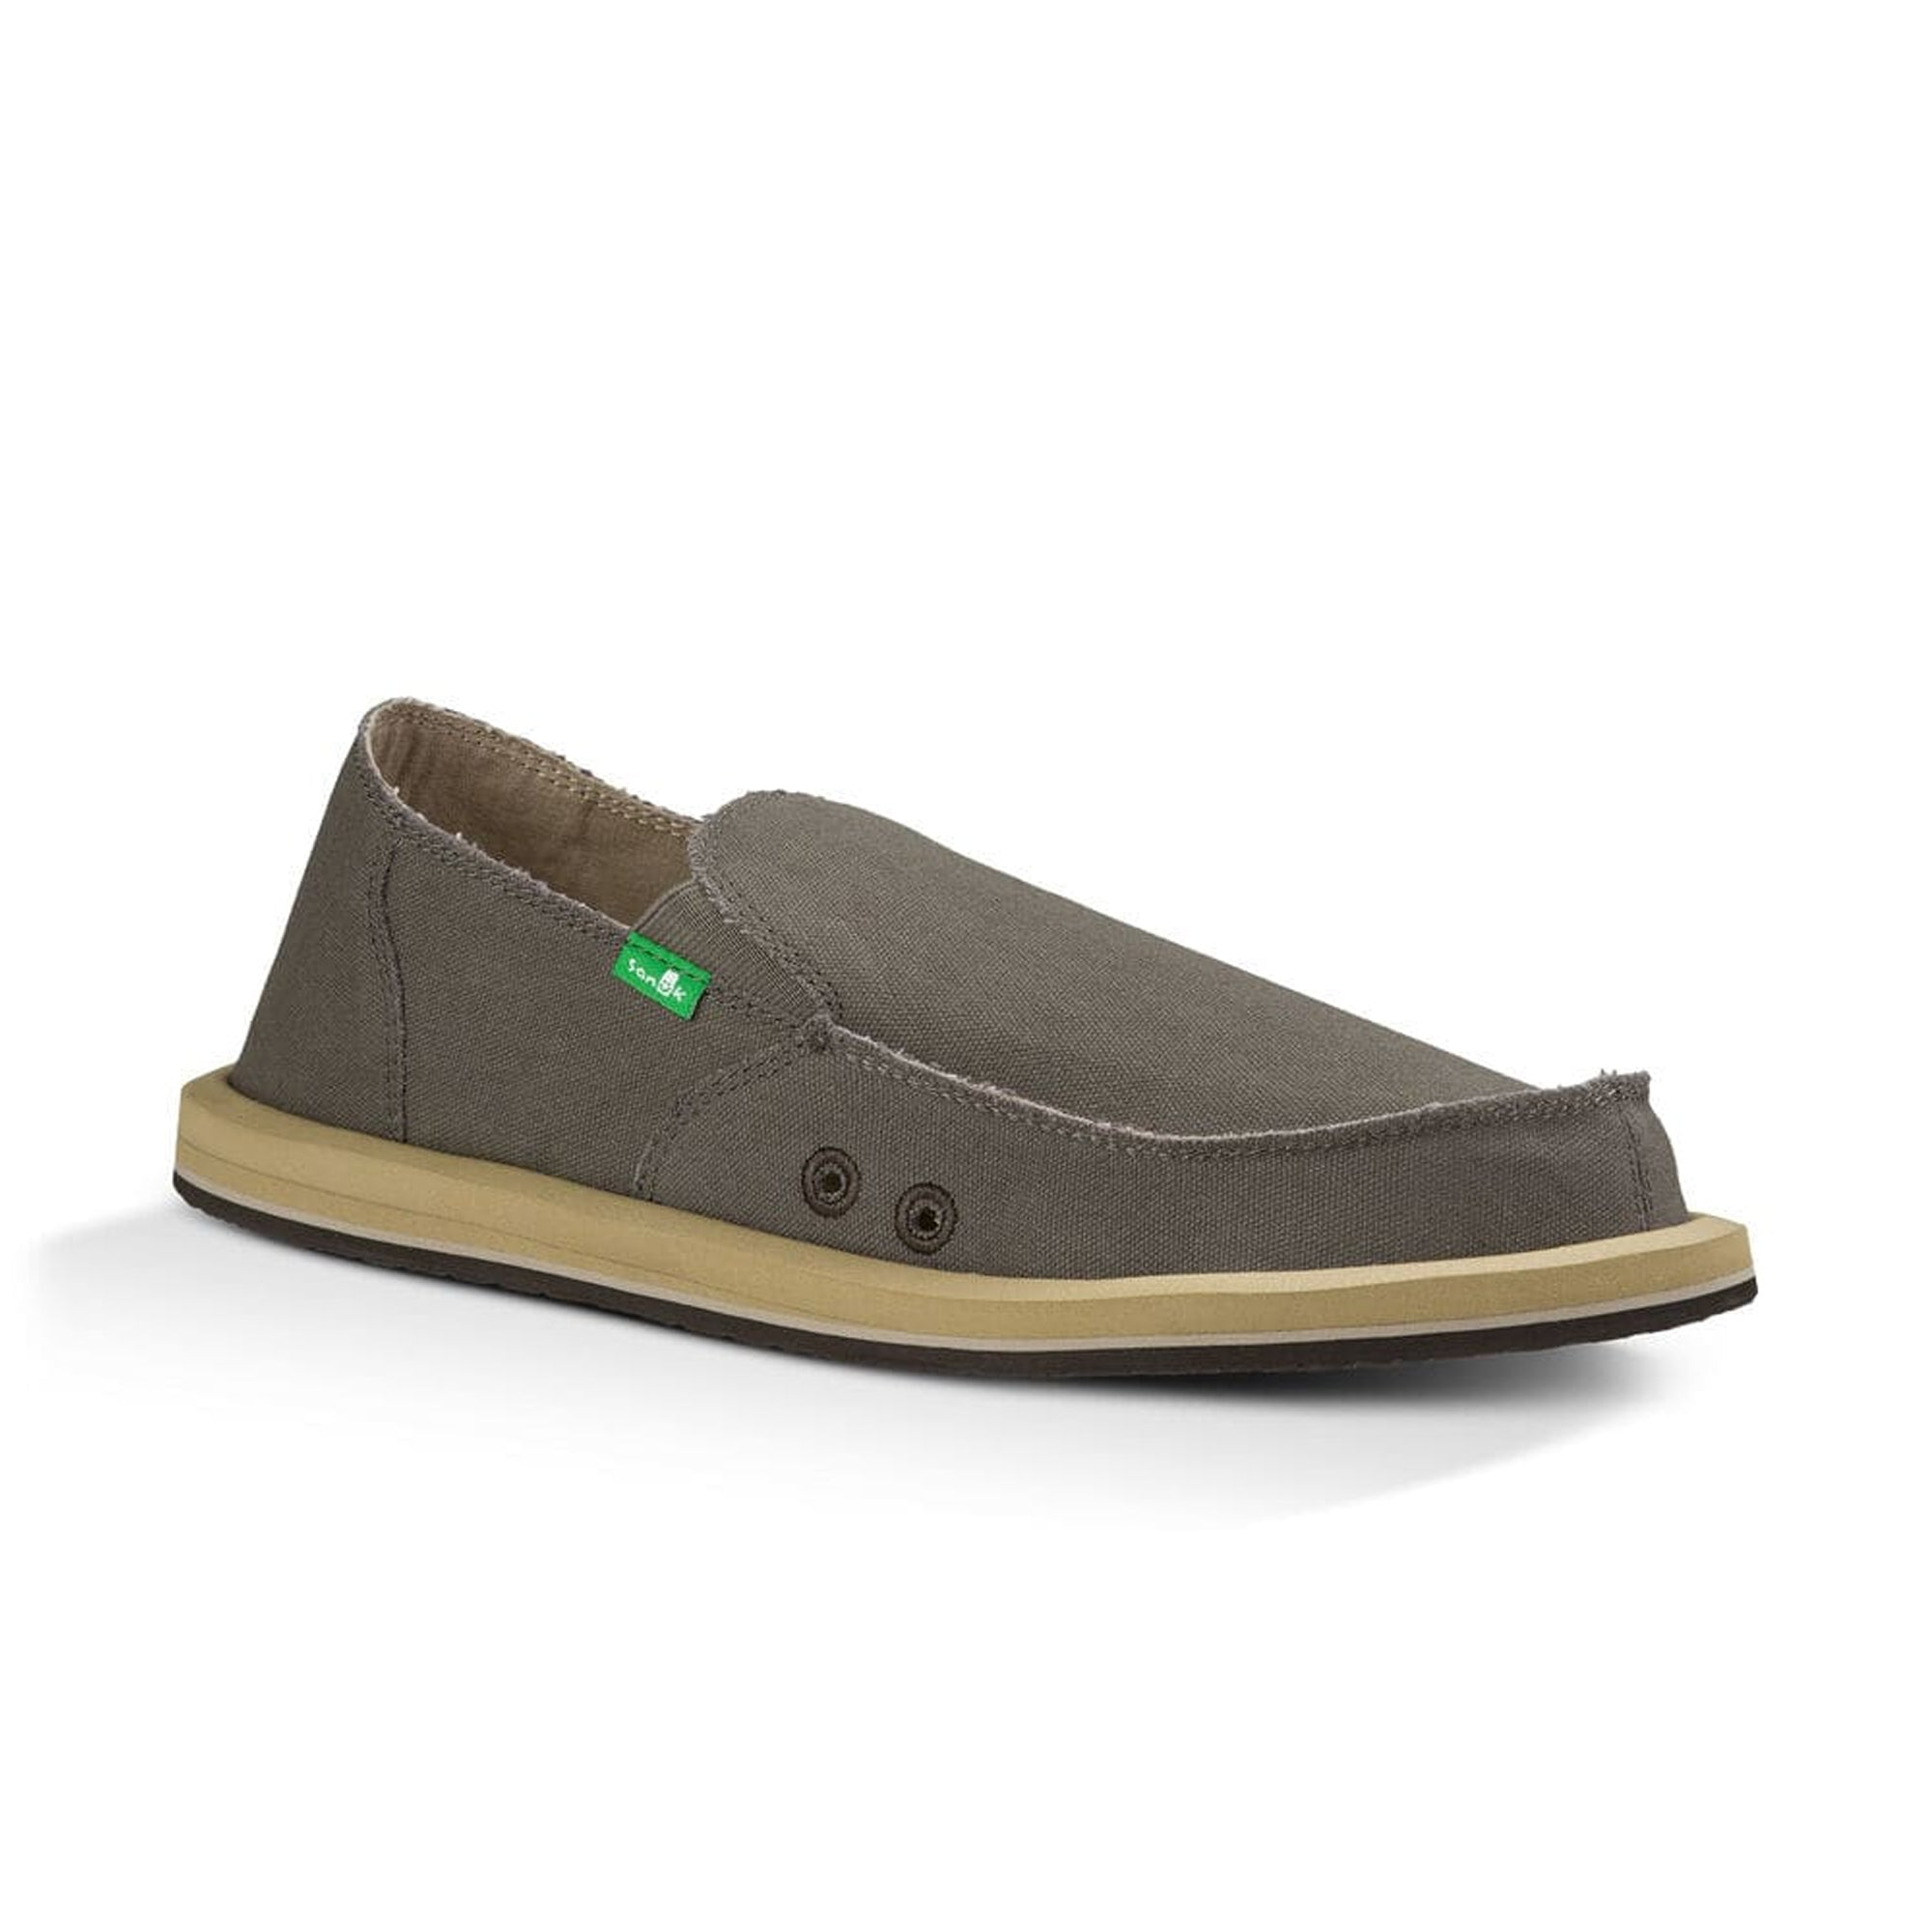 Sanuk Vagabond Men's Shoes